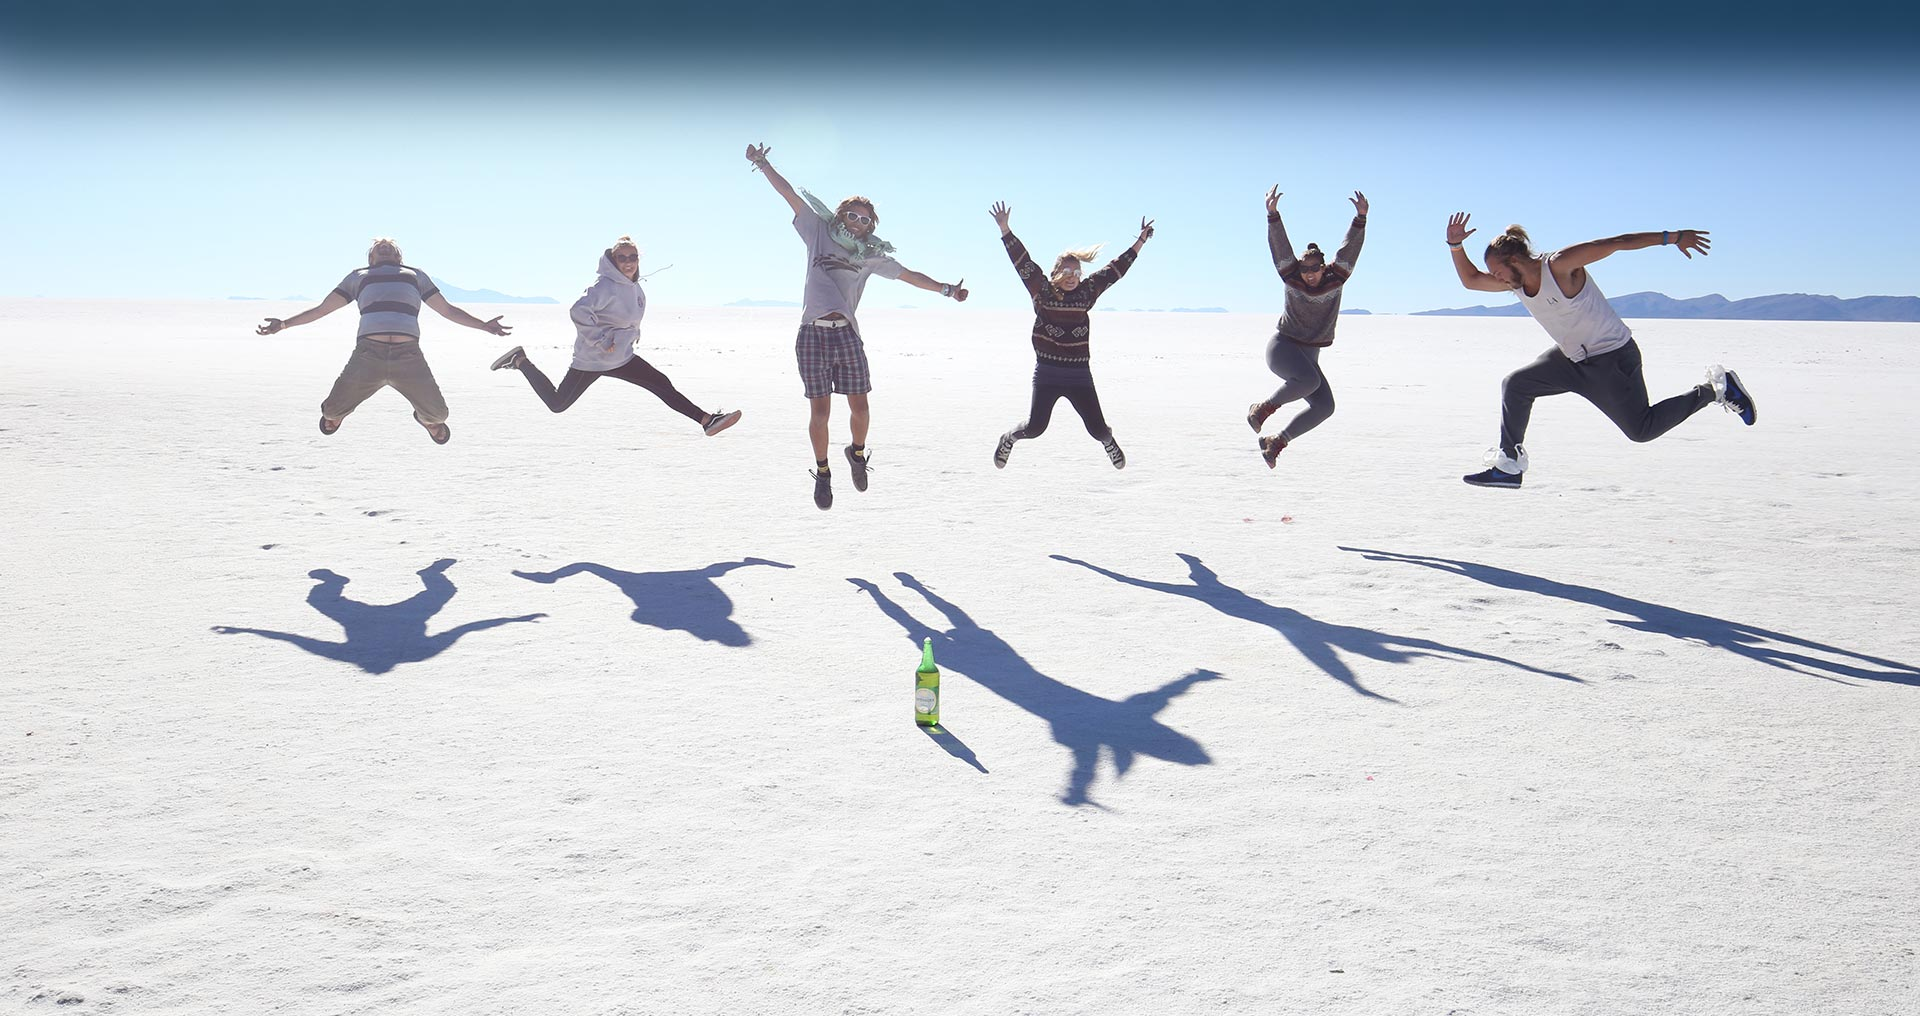 Global Convoy jump for joy in the salt flats